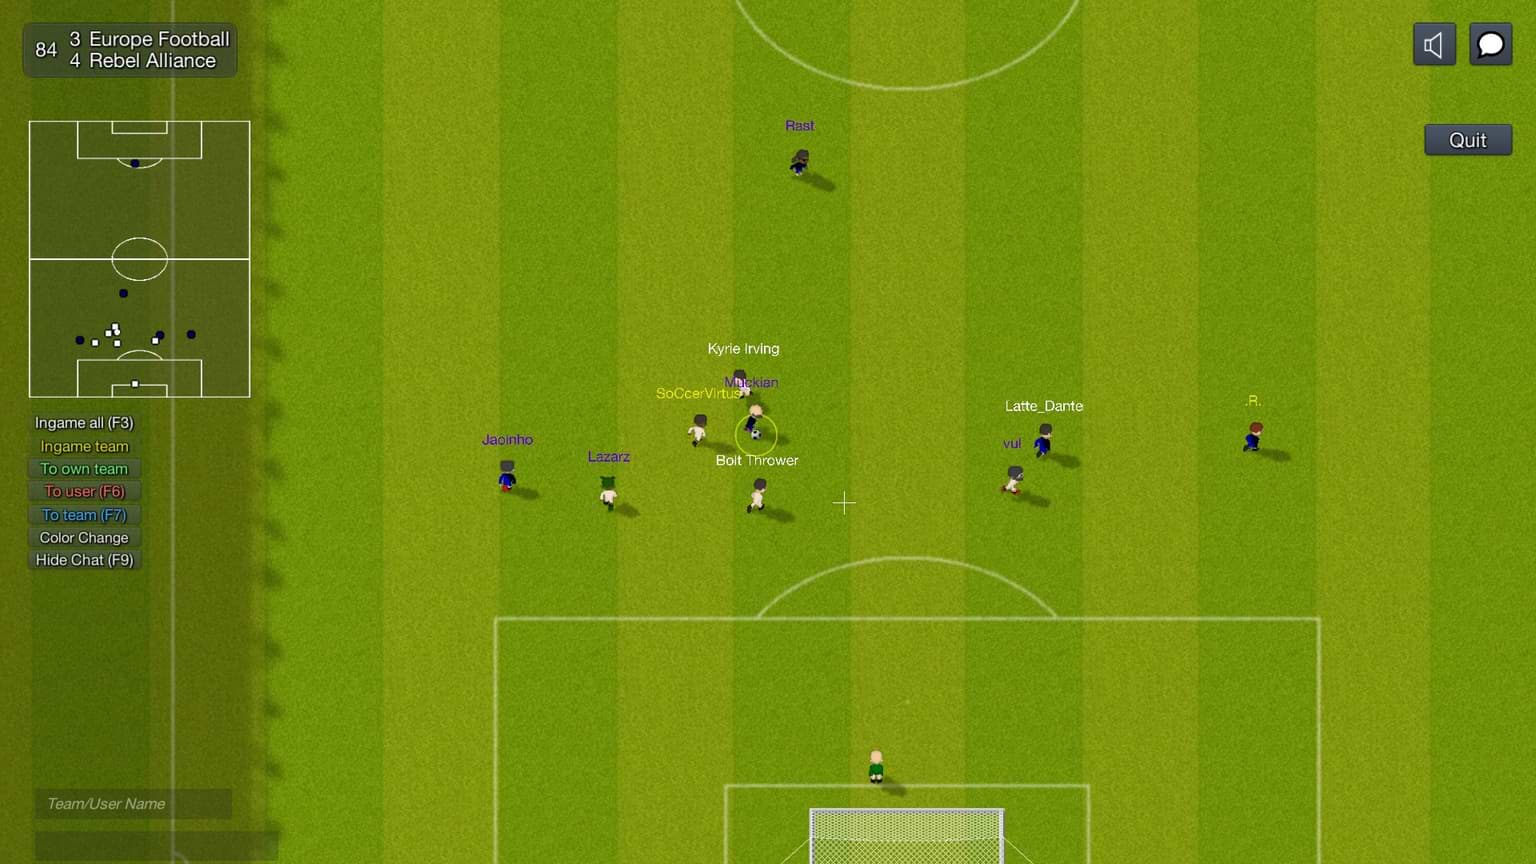 World of Soccer Online is free-to-play